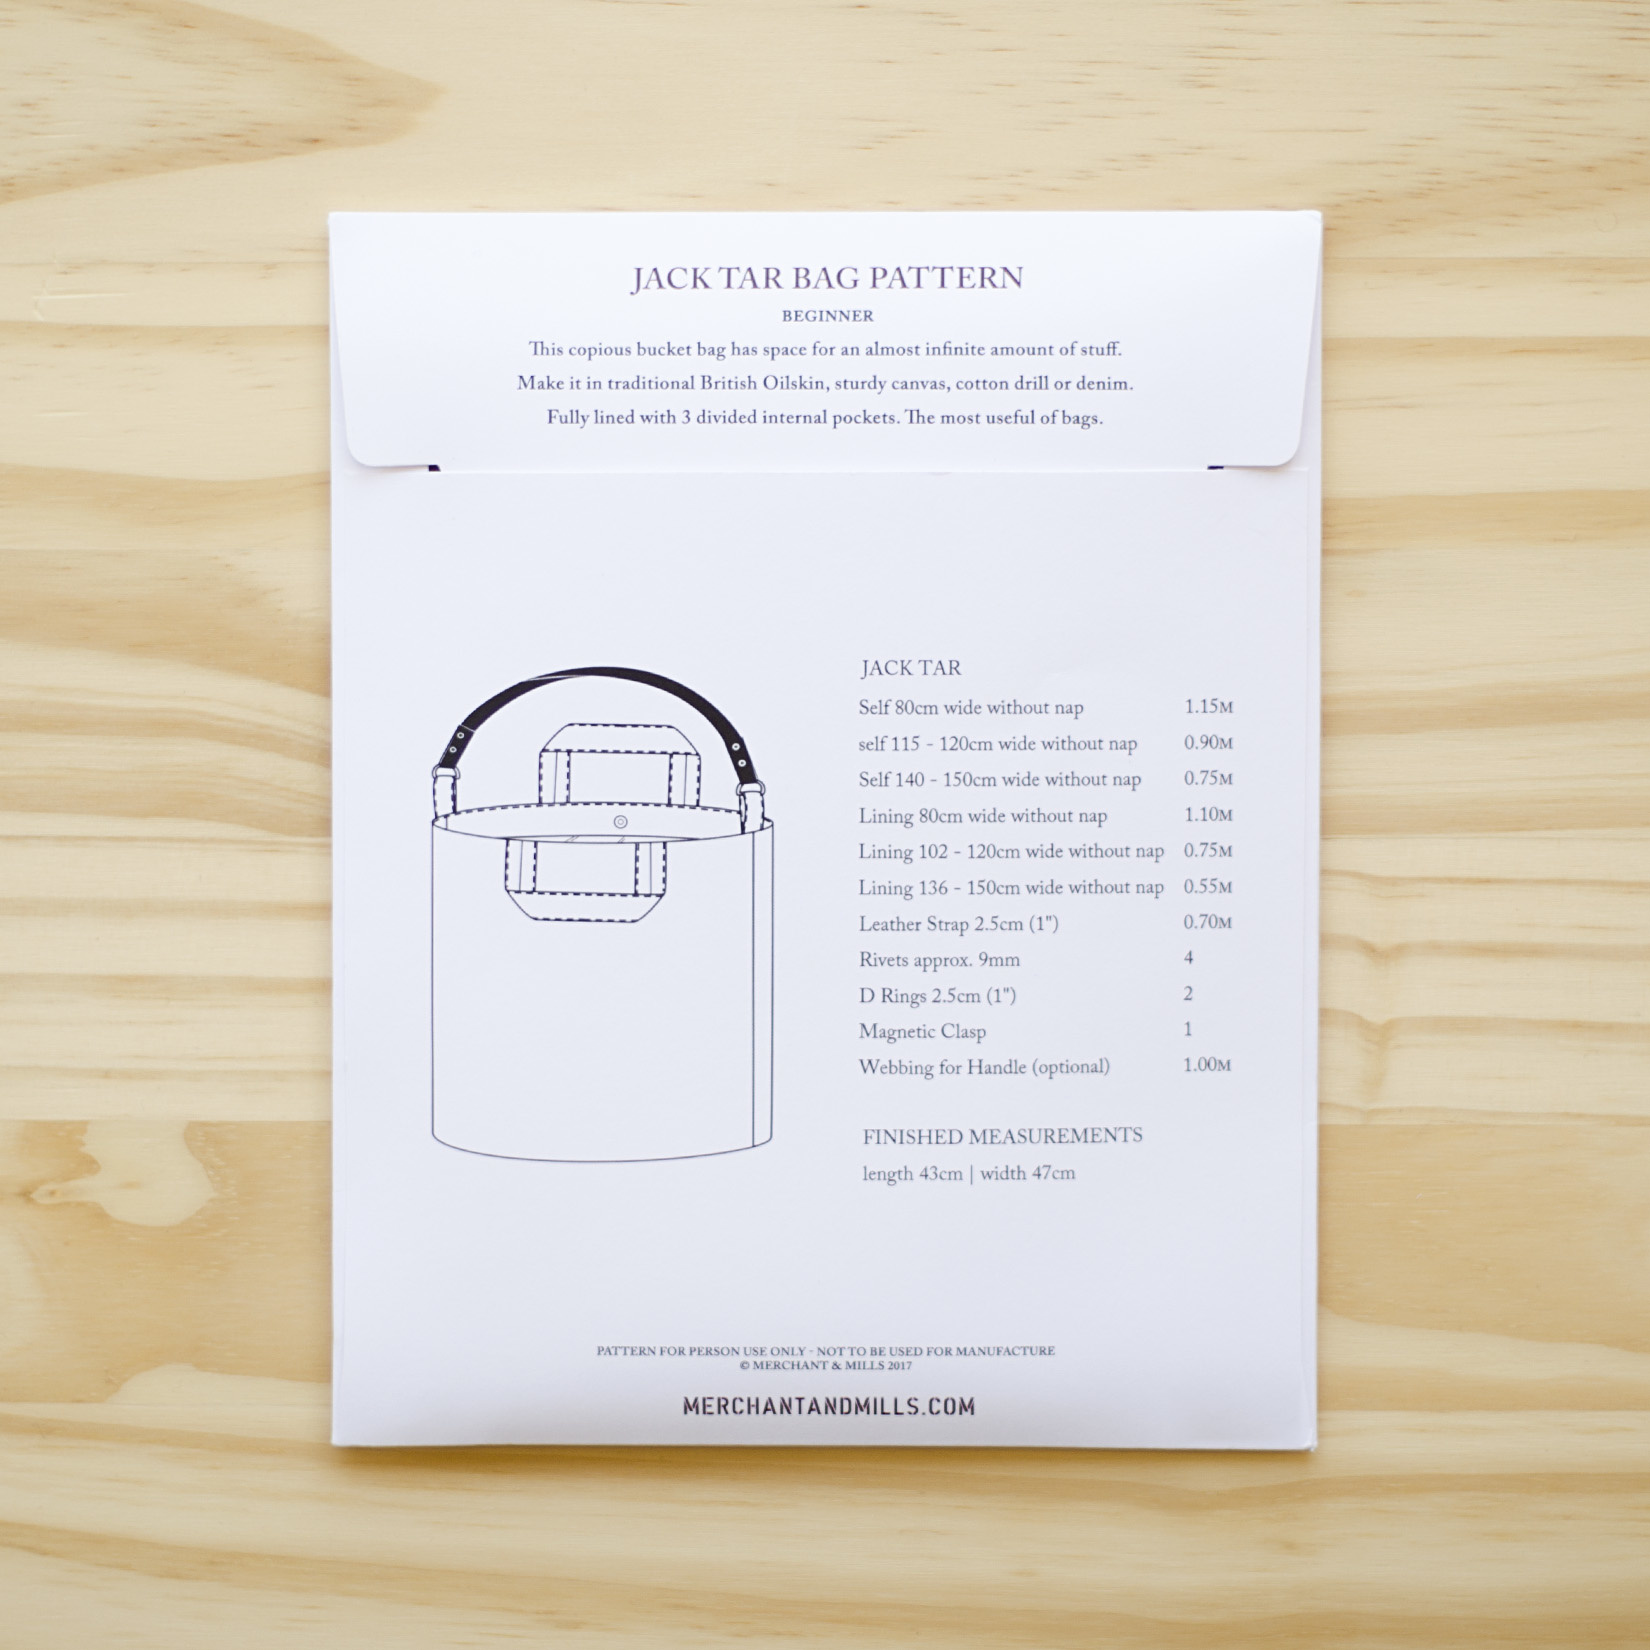 Merchant & Mills : Sewing Pattern : Jack Tar Bag